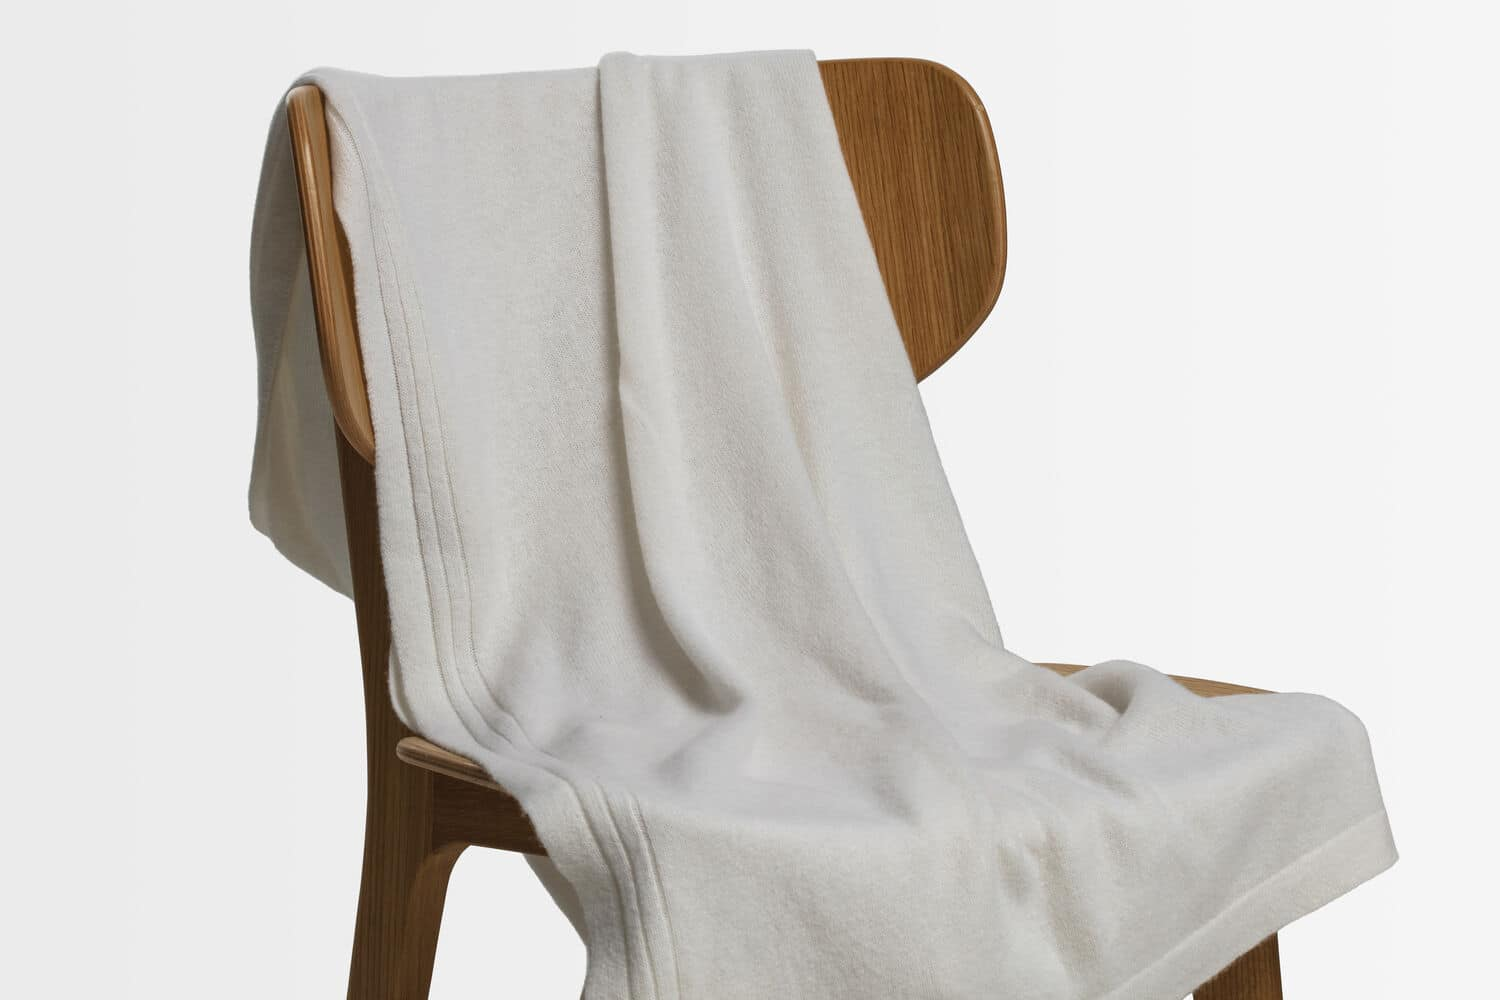 italian cashmere jersey throw in natural